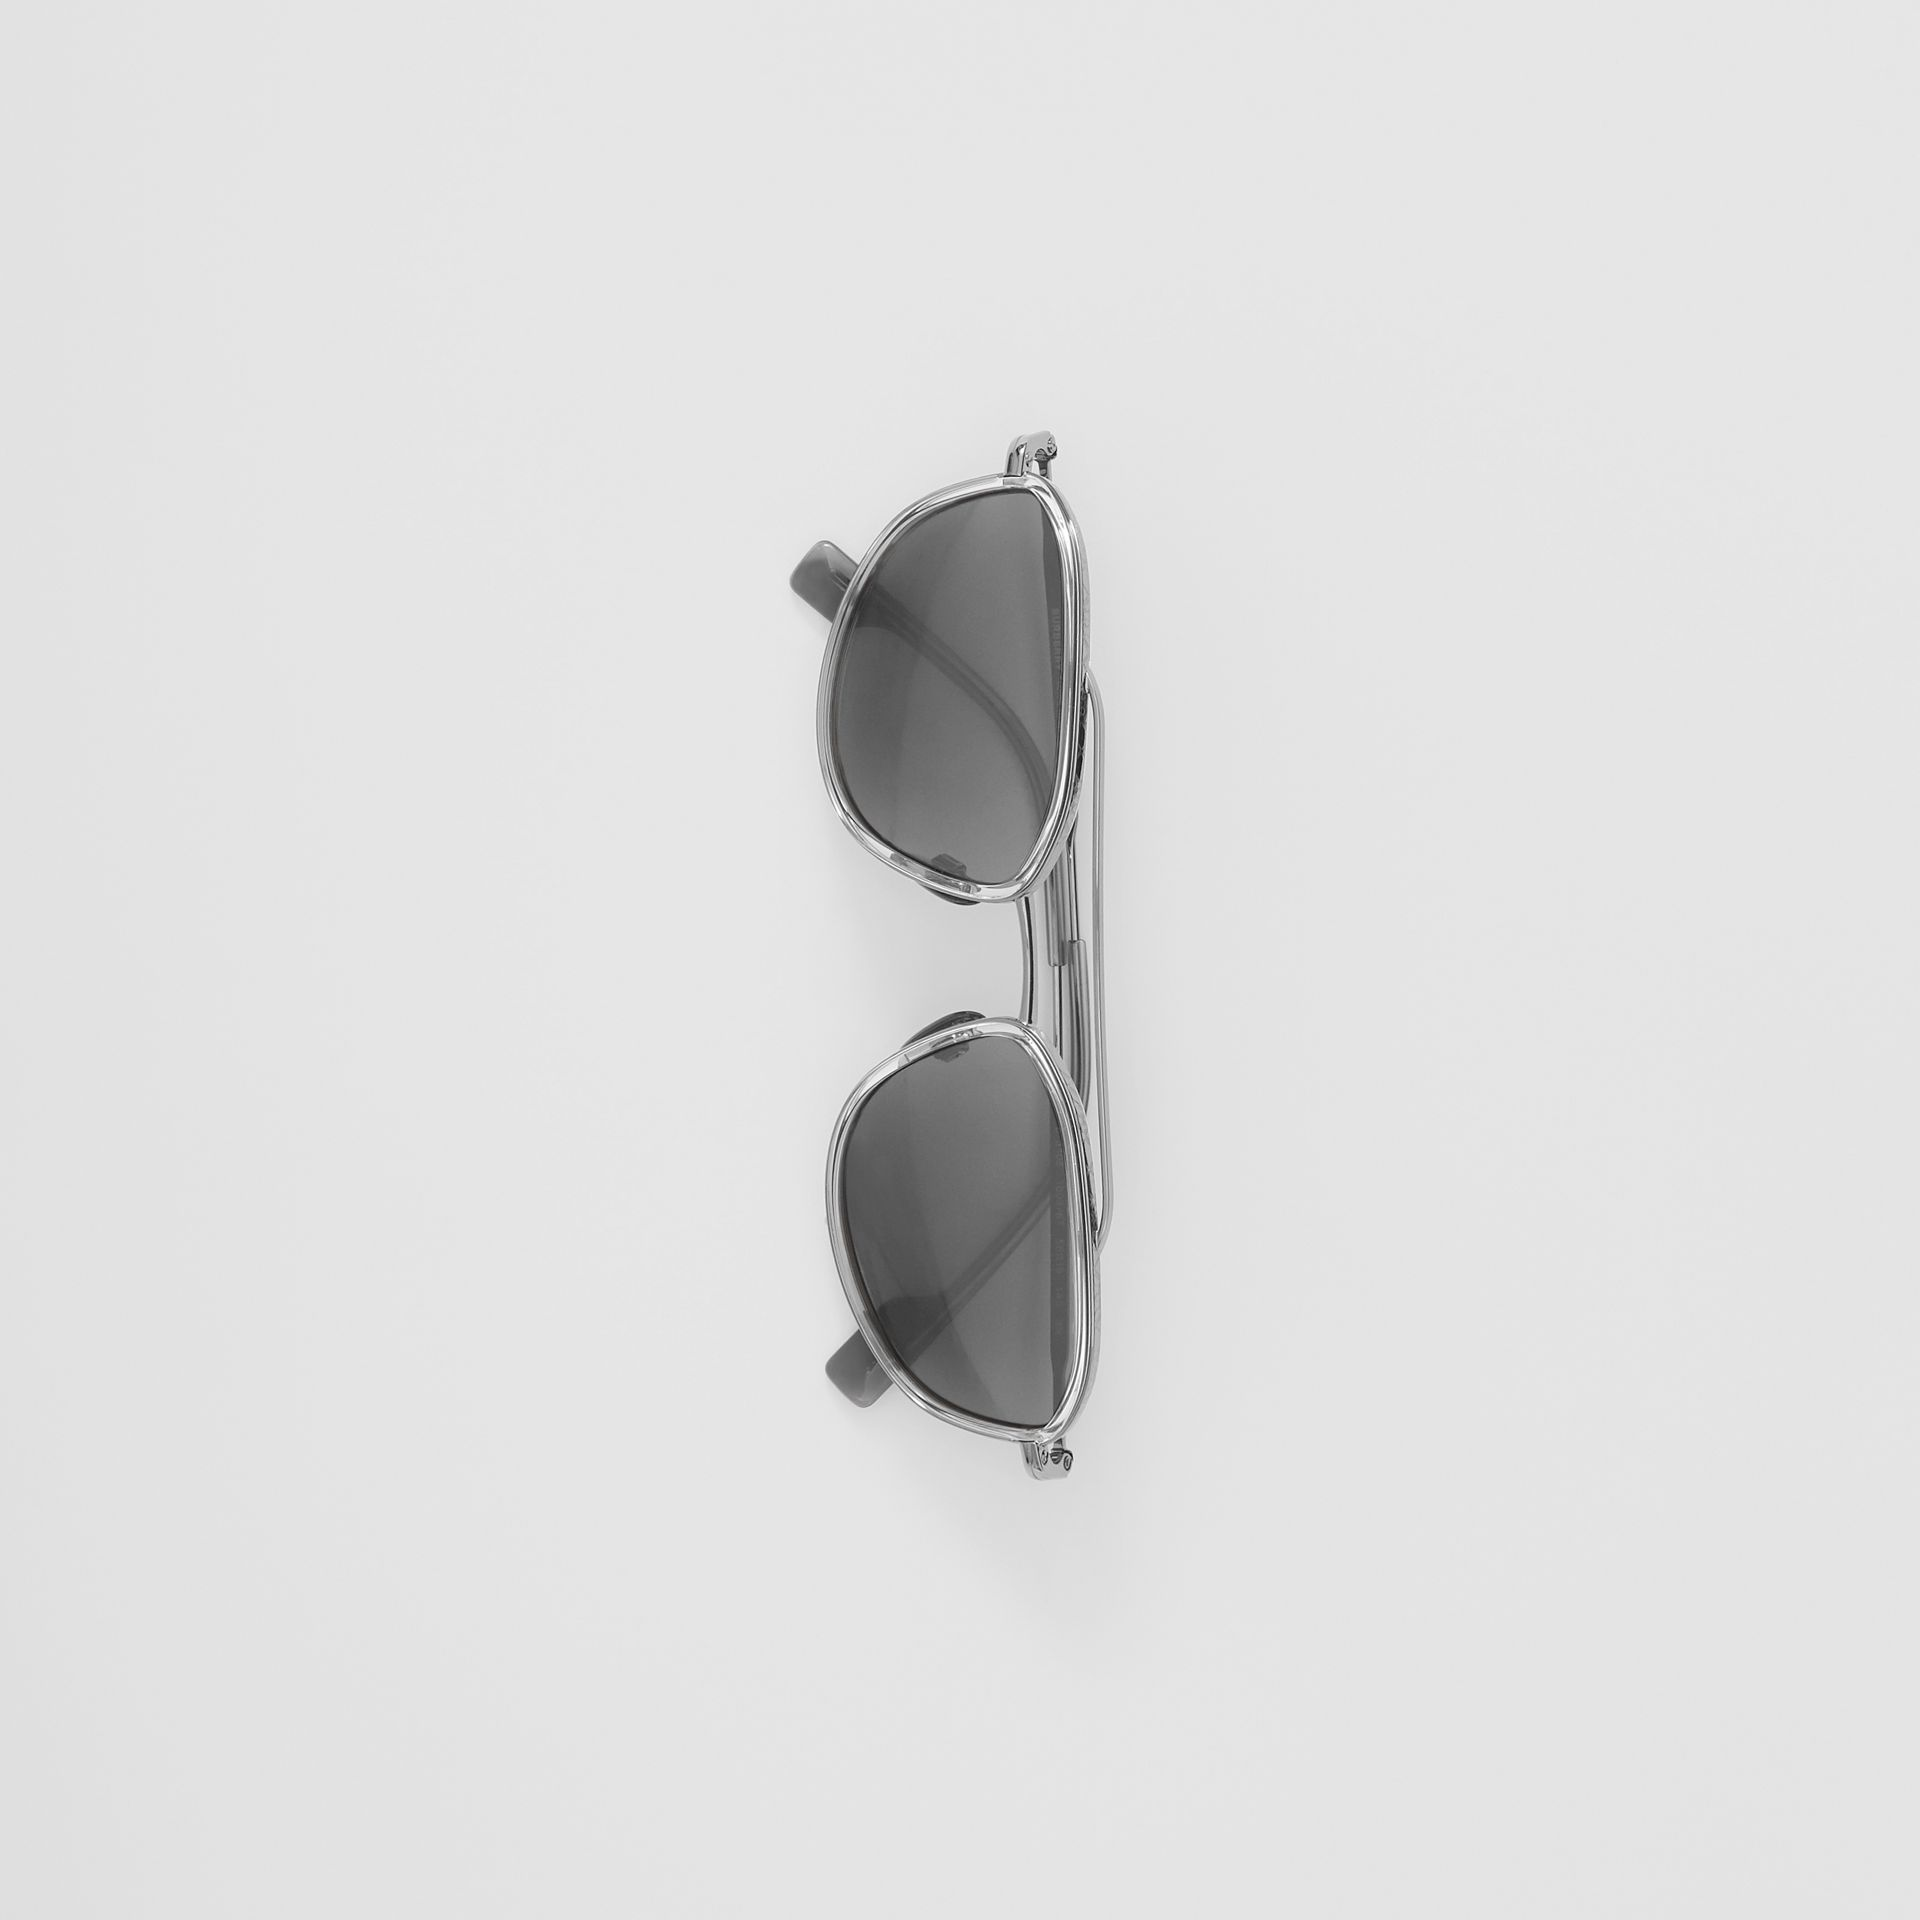 Geometric Navigator Sunglasses in Gunmetal Grey - Men | Burberry United Kingdom - gallery image 3